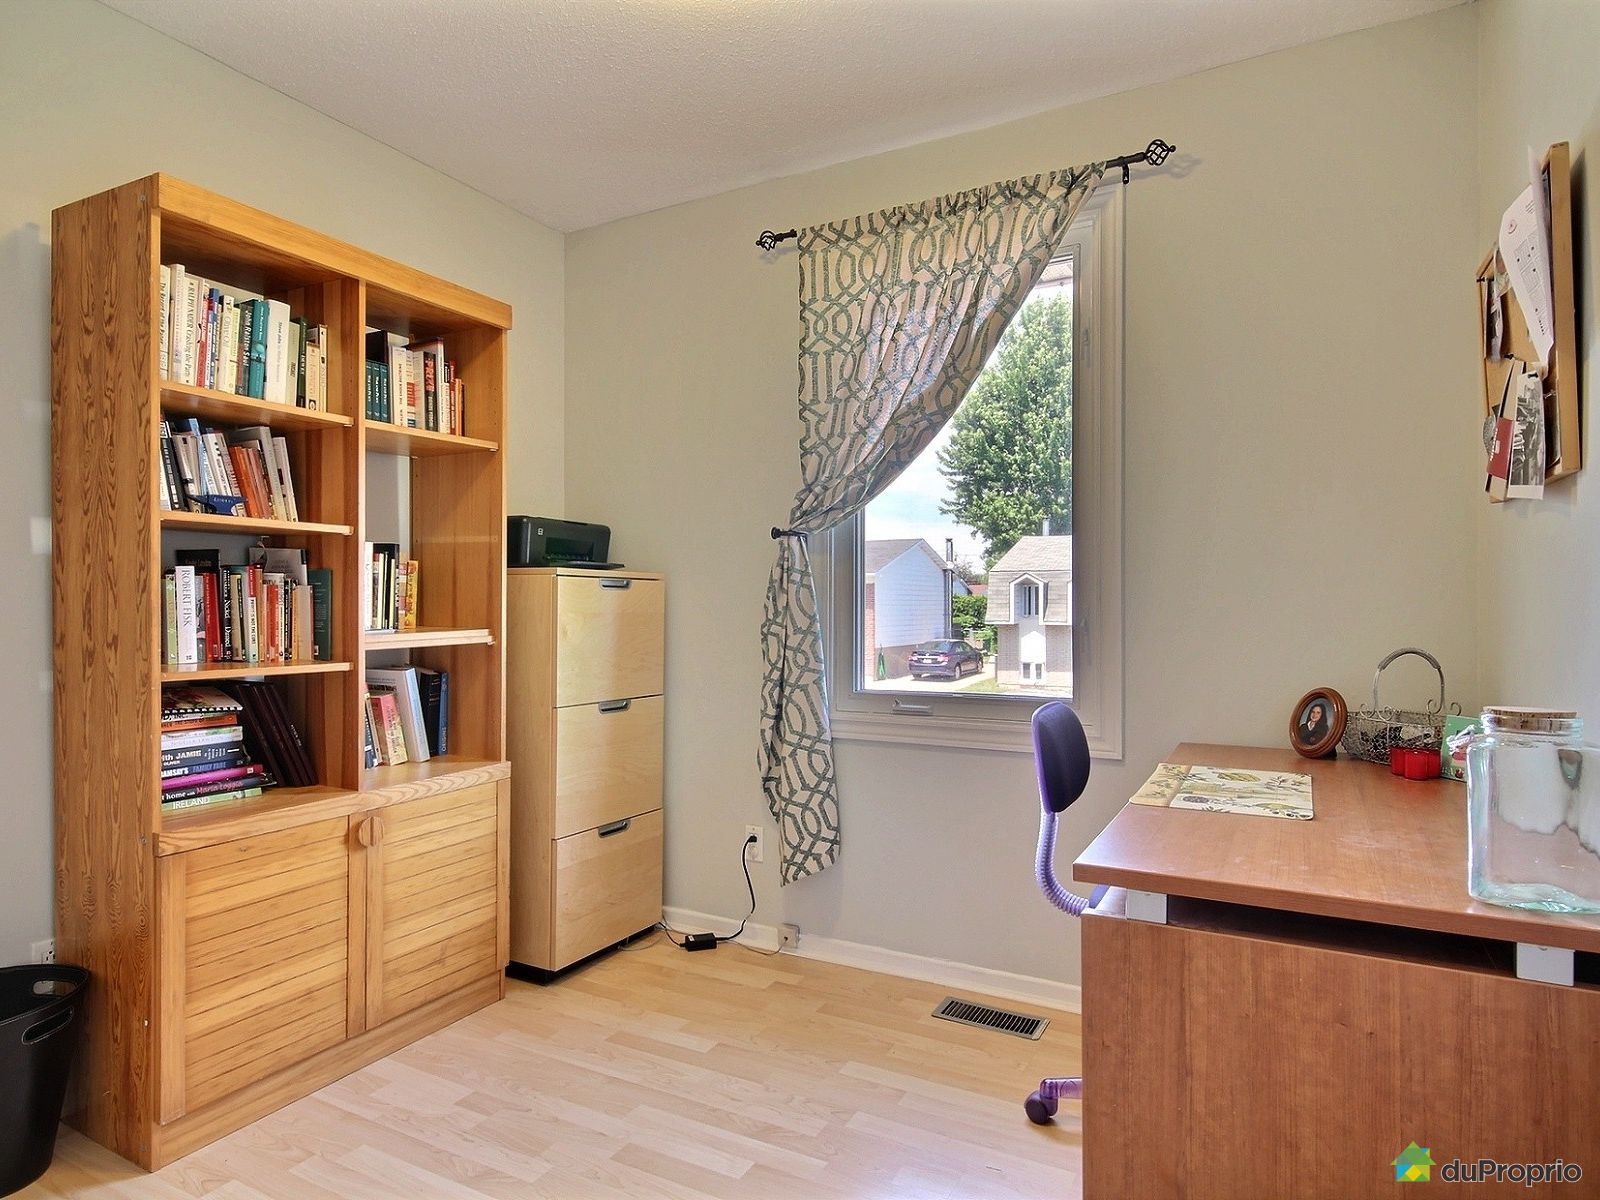 Bungalow sur lev for sale in gatineau 75 rue de troyes for 3 bedroom house with basement for sale